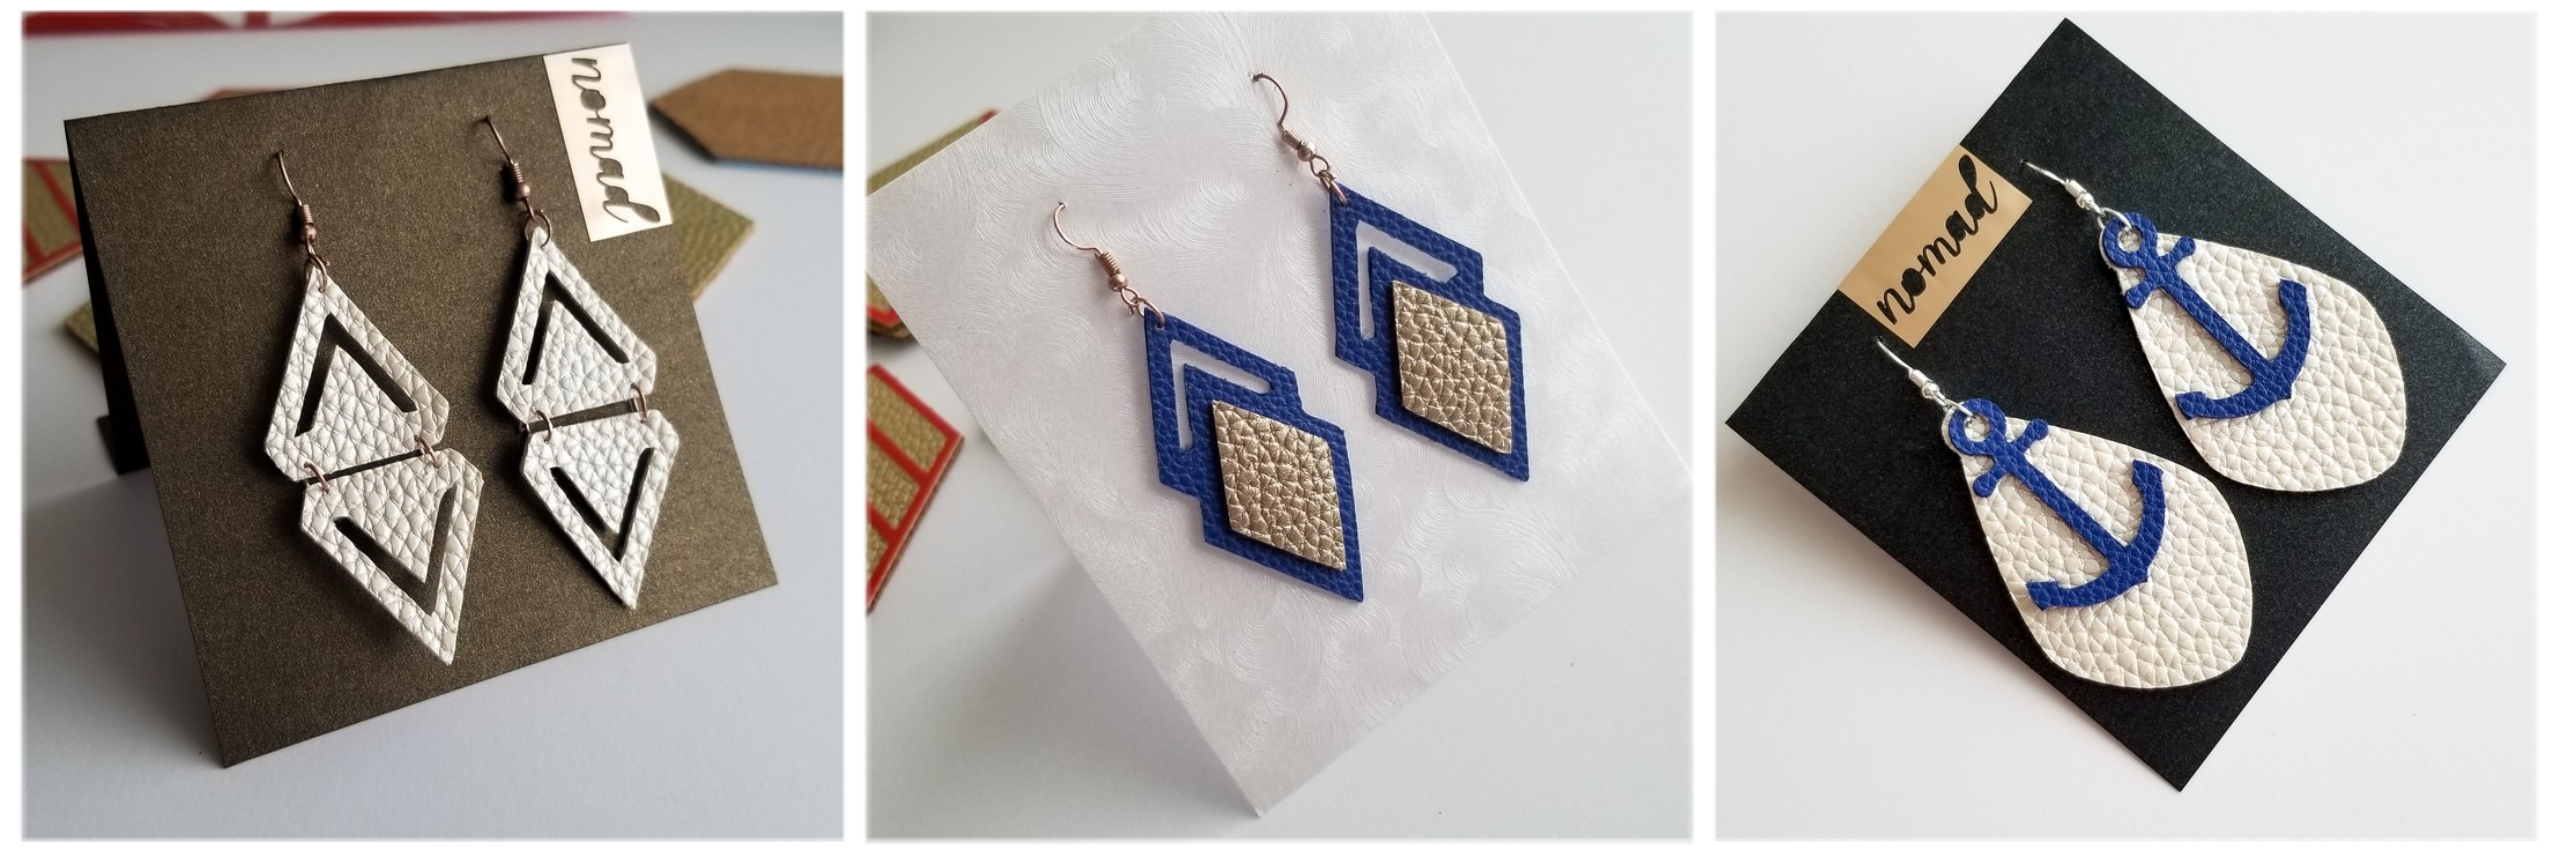 Leather Earrings with Cricut